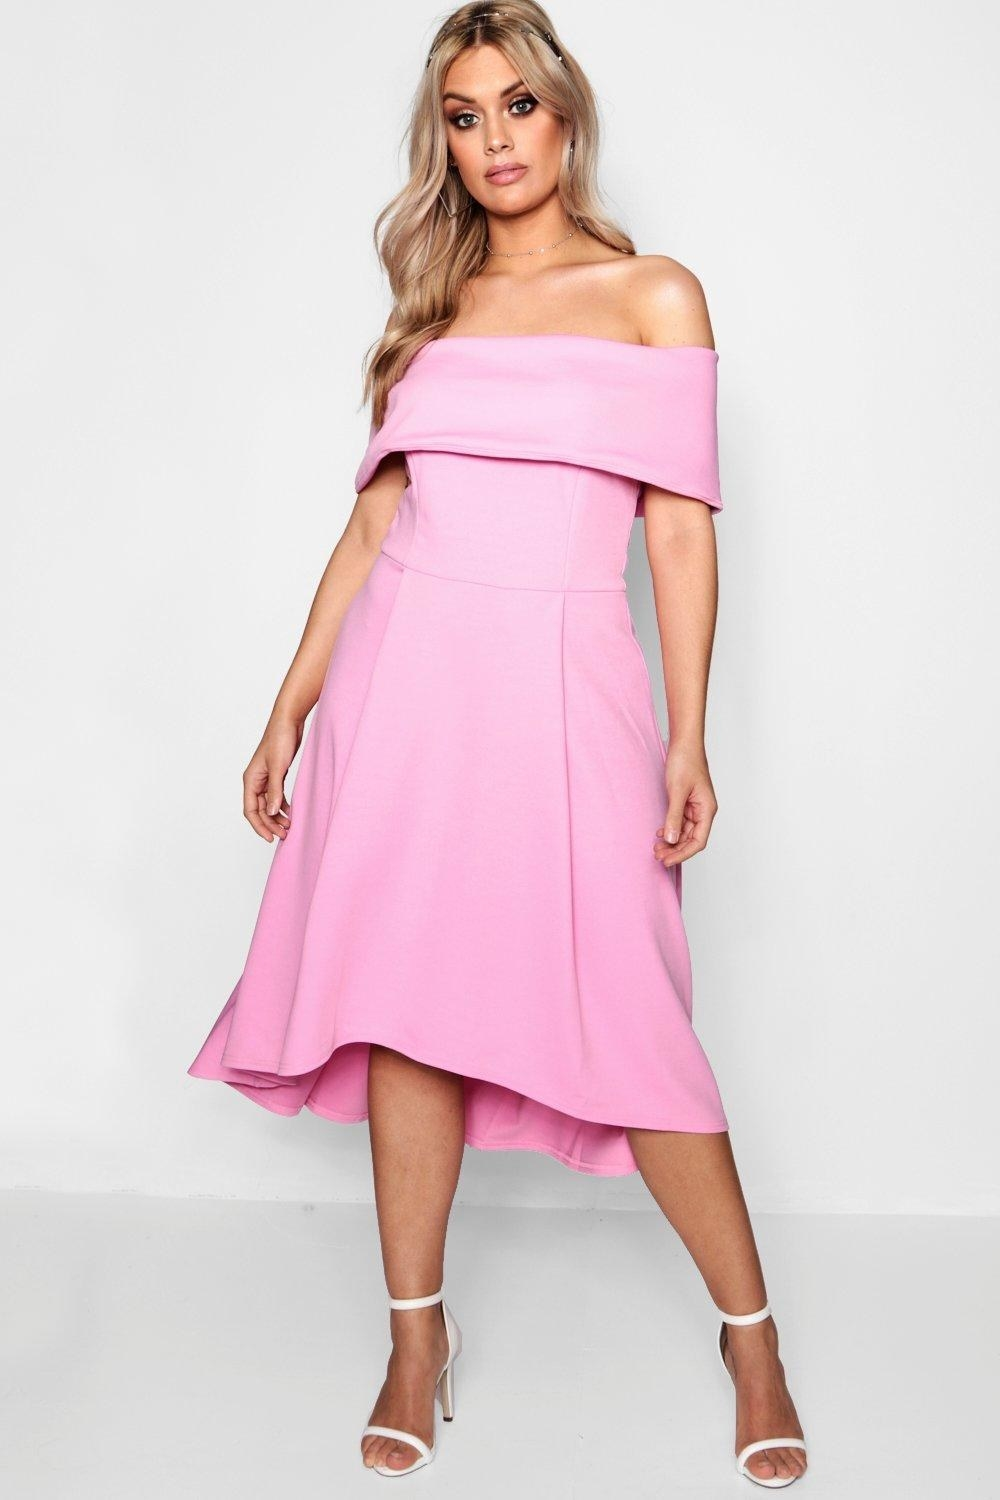 Get it from Boohoo for $40 (available in sizes 12-24 and in eight colors).